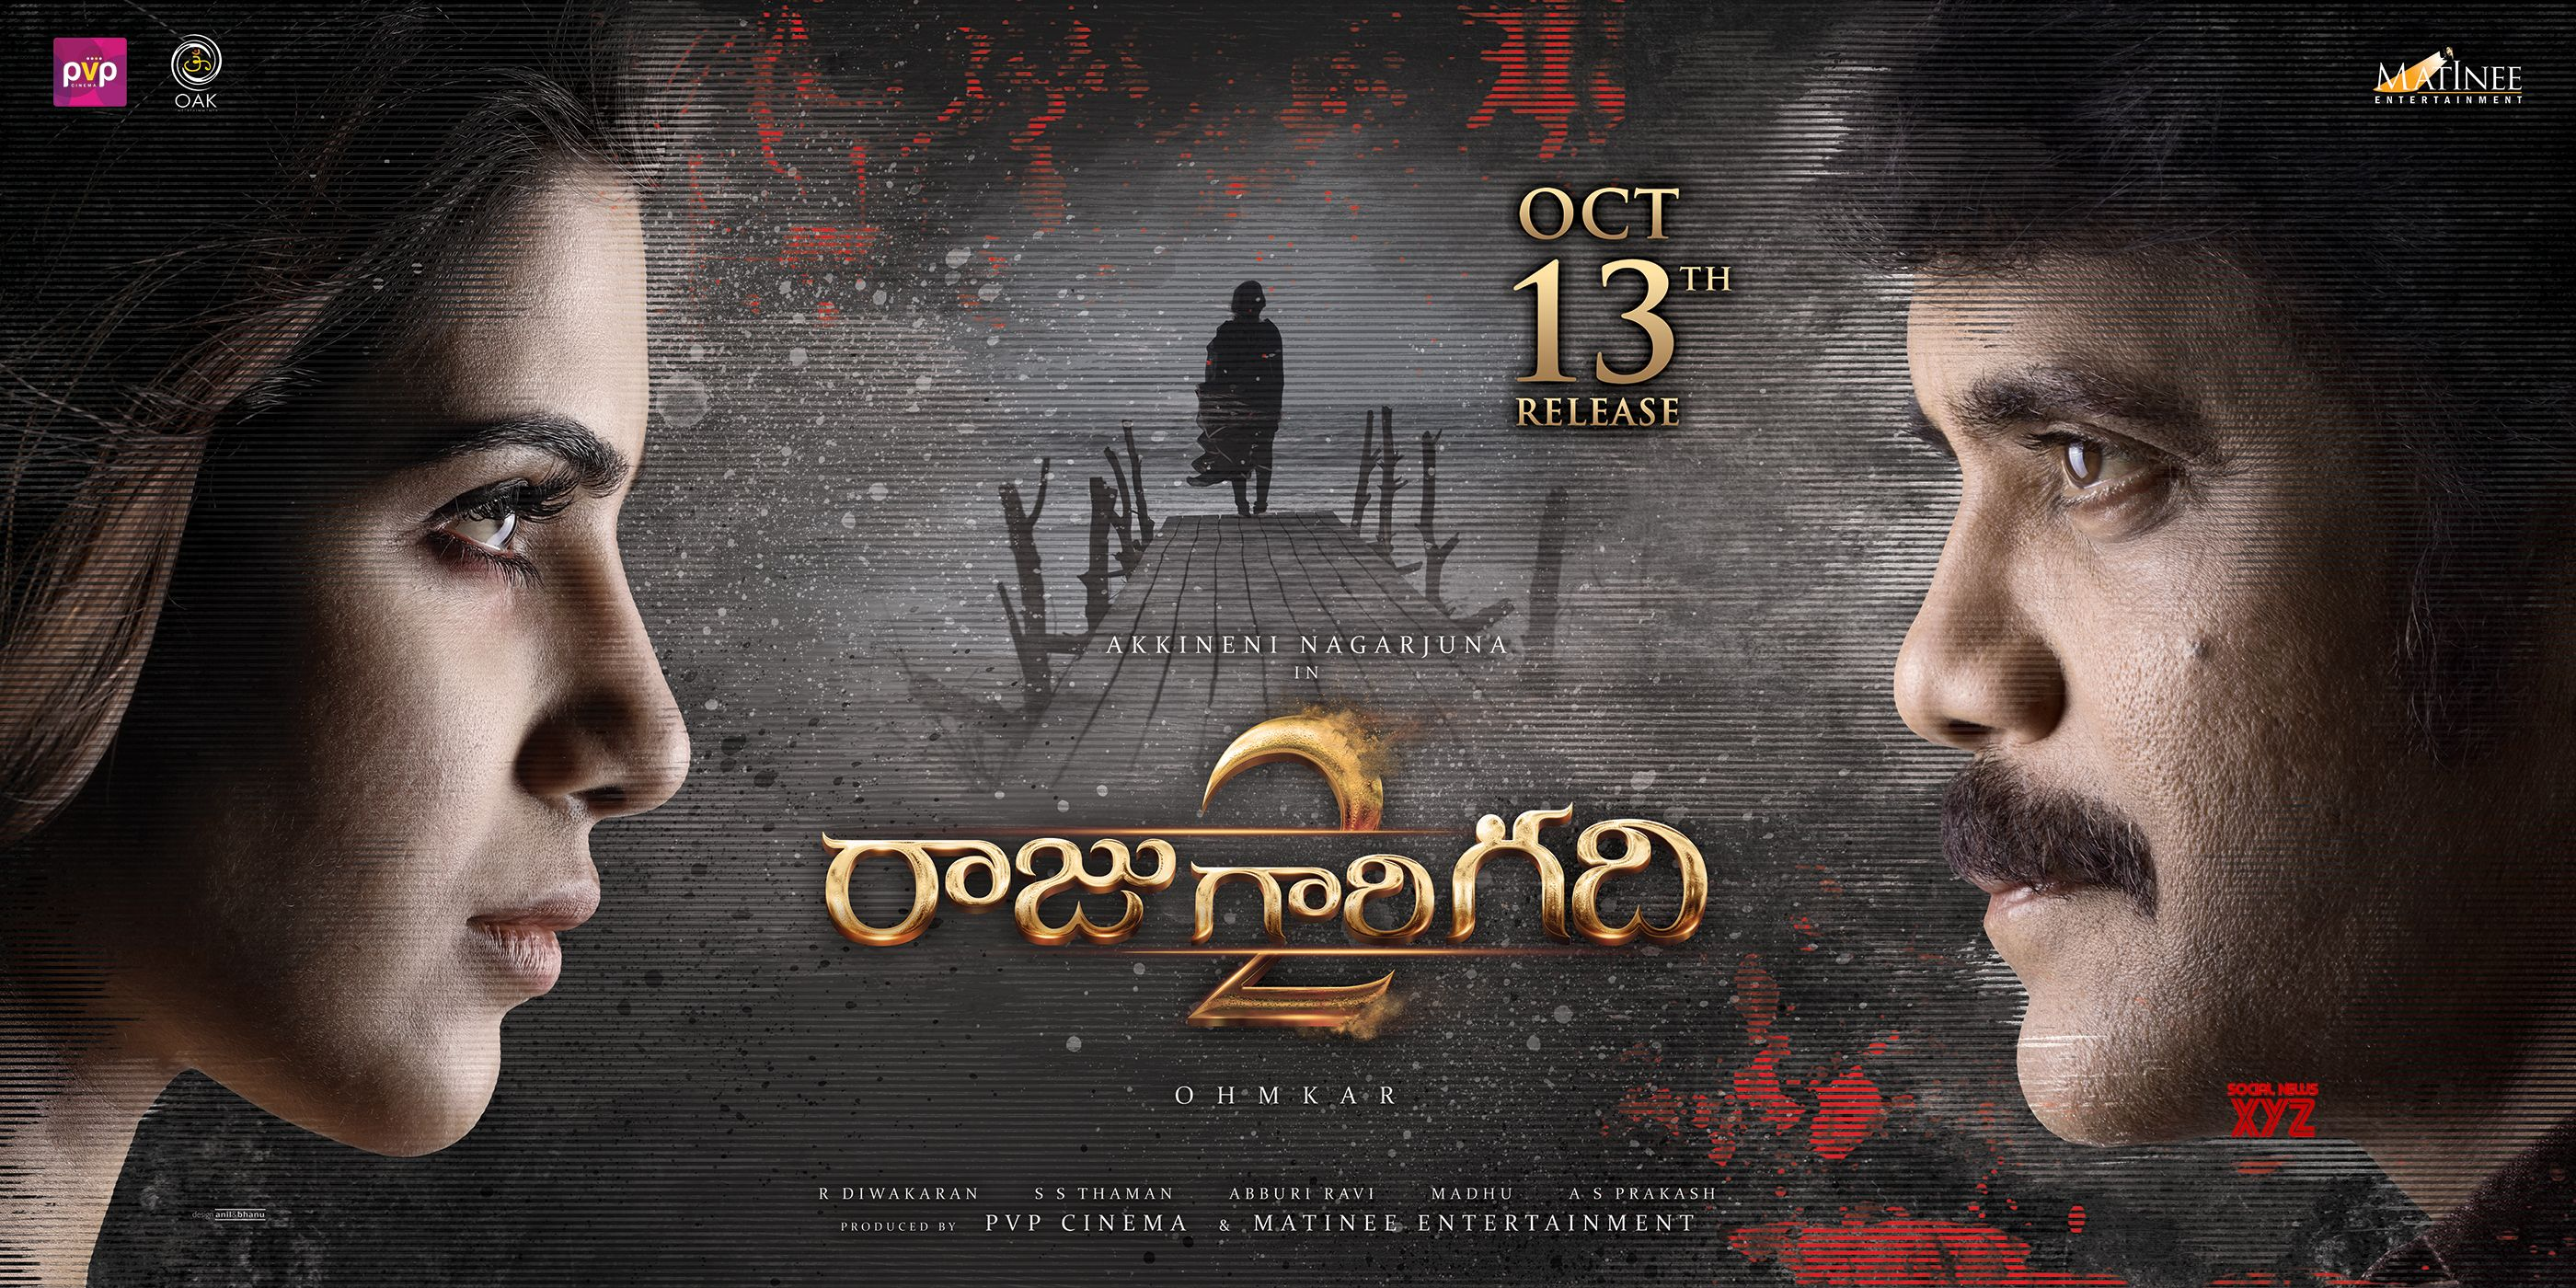 Most Inspiring Wallpaper Logo Raju - Raju-Gari-Gadhi-2-New-Wallpaper-  Pictures_489688.jpg?fit\u003d2800%2C1400\u0026quality\u003d80\u0026ssl\u003d1